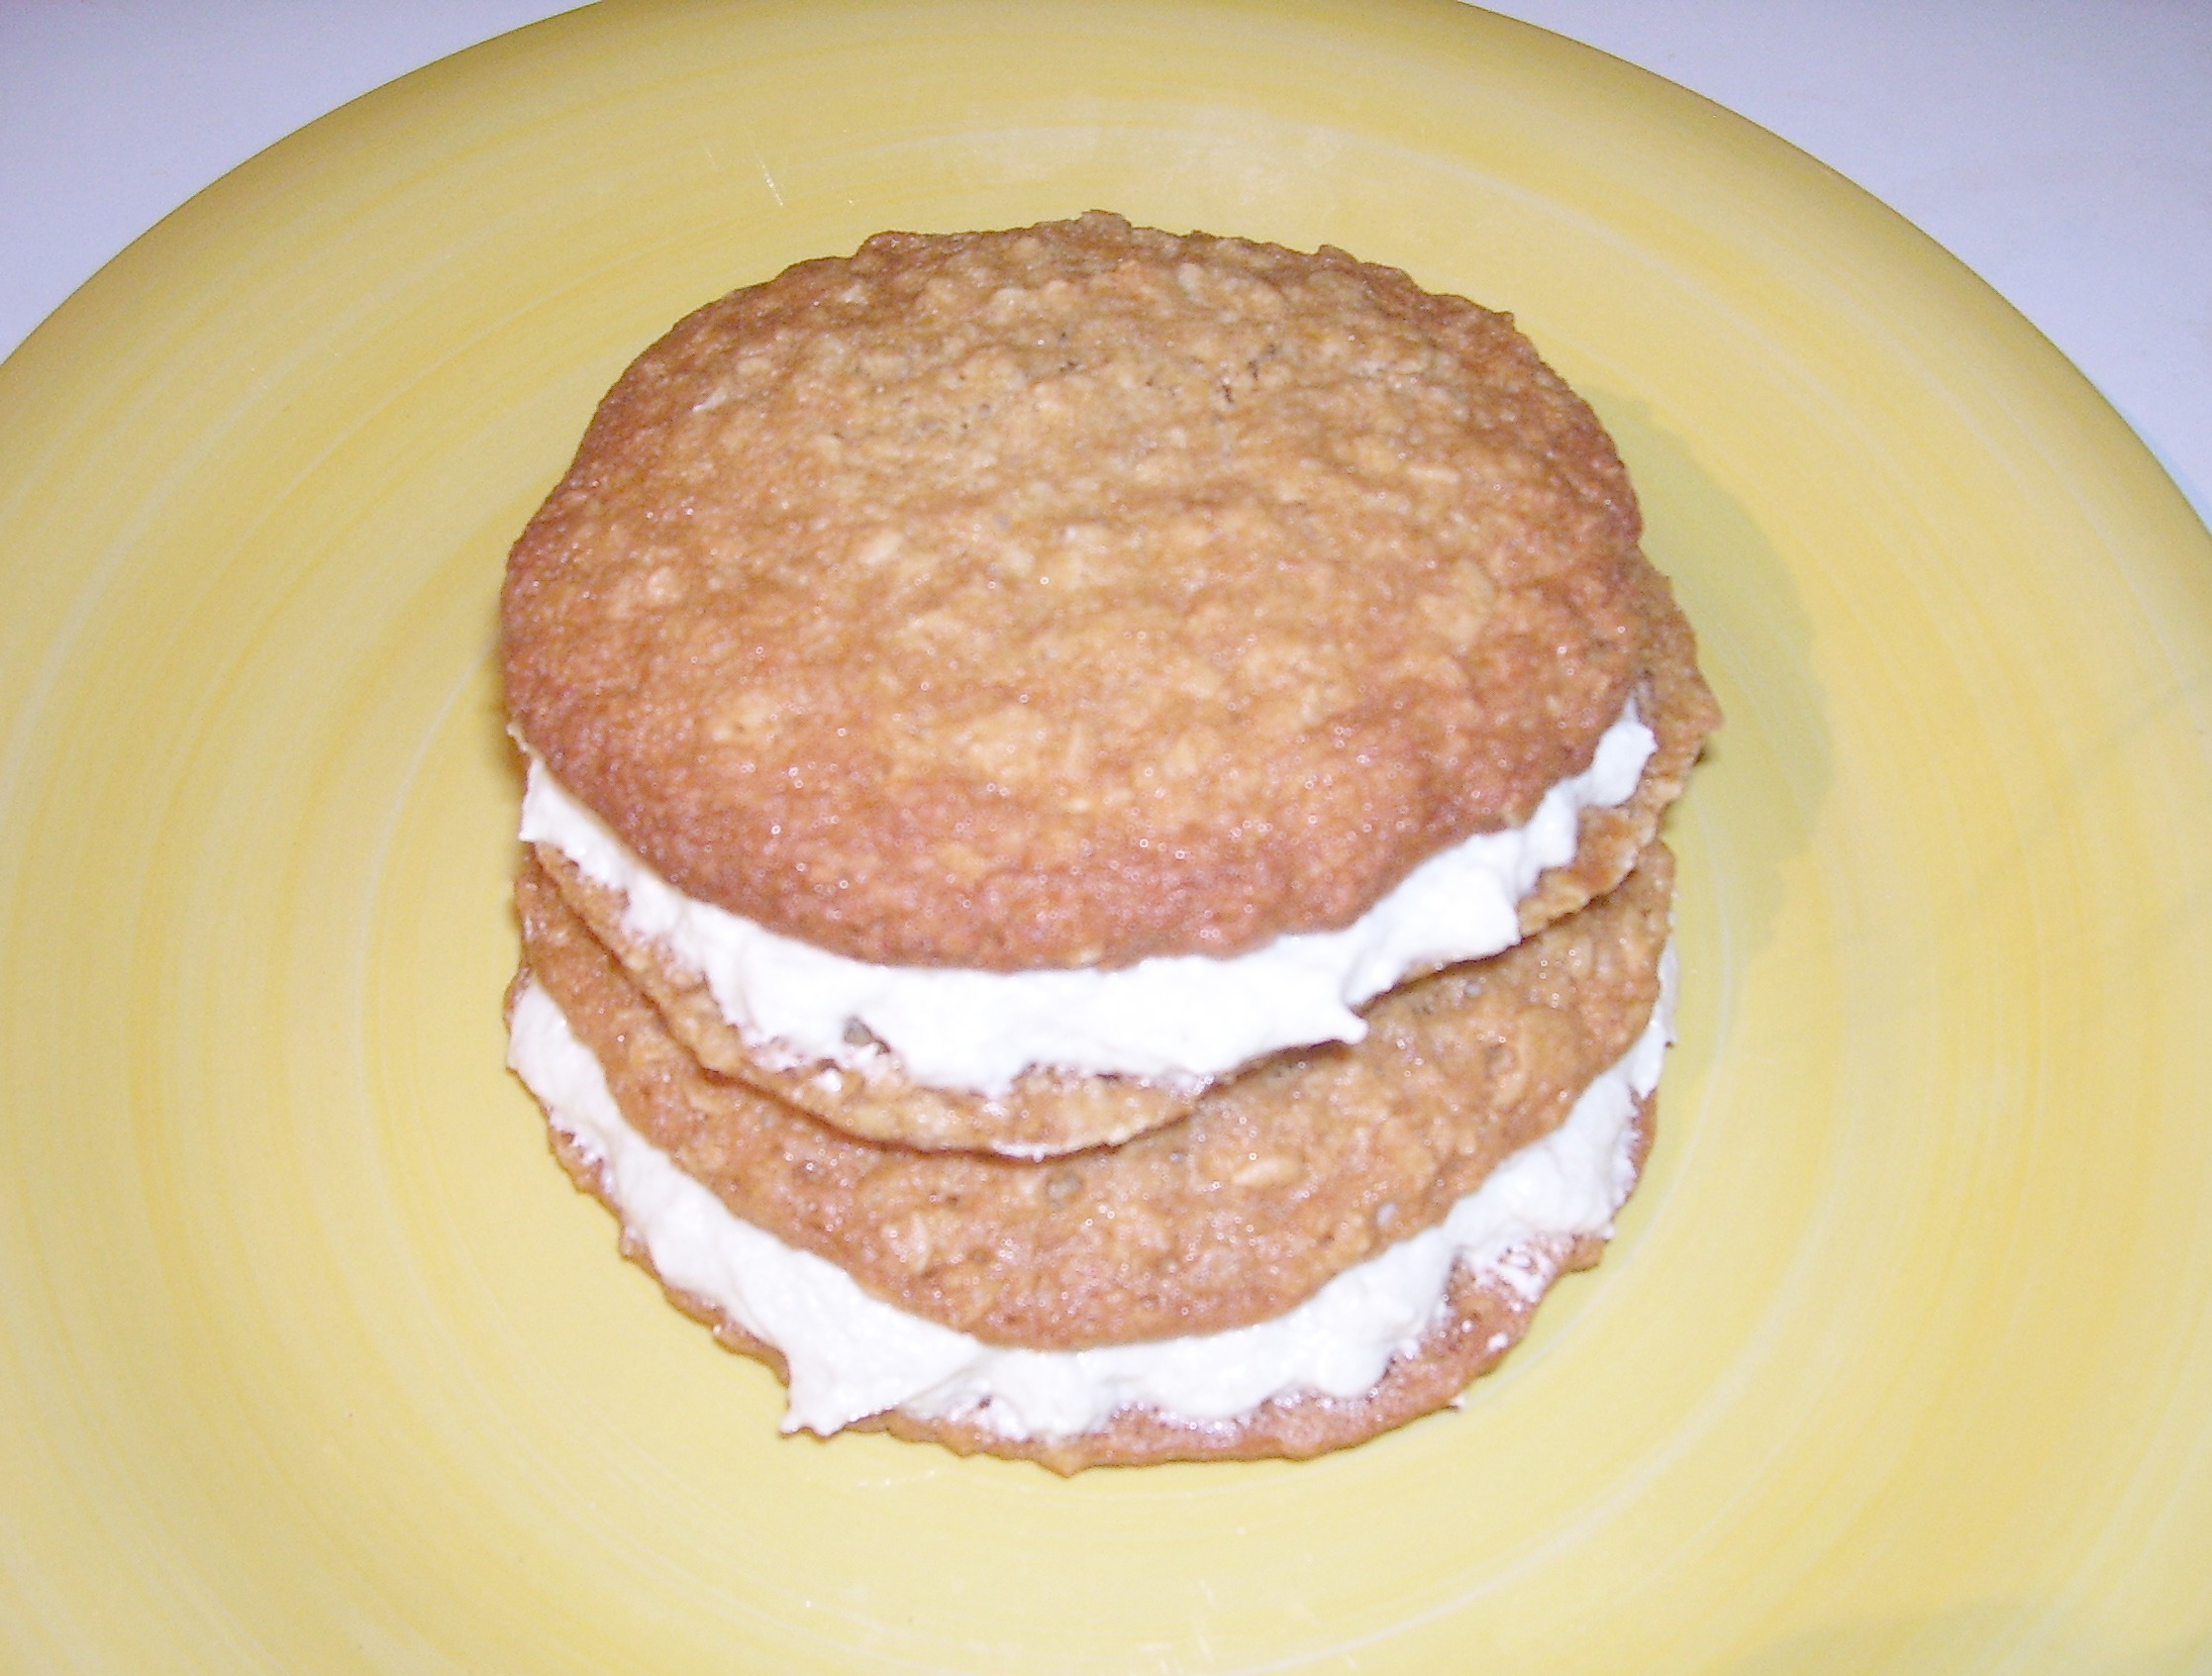 Old Fashioned Oatmeal Sandwich Cookie Recipe with luscious, creamy filling makes the best oatmeal cookie, ever.